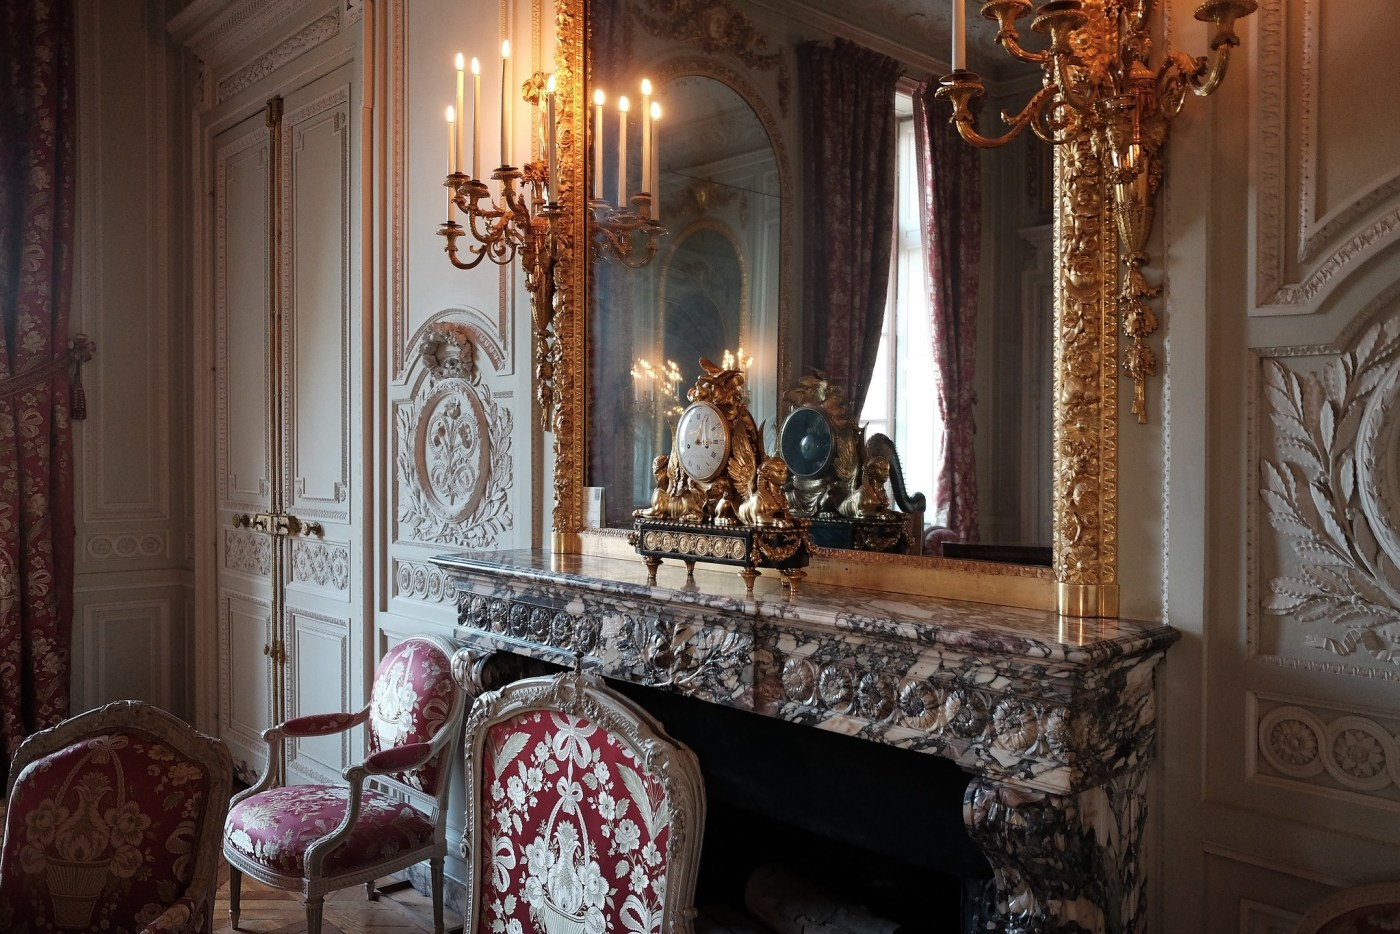 Montres Breguet donated 7 million Euros to the Chauteau de Versailles foundation to restore Petit Trianon, Marie-Antoinette's home, including beautiful Royal clocks in almost every room